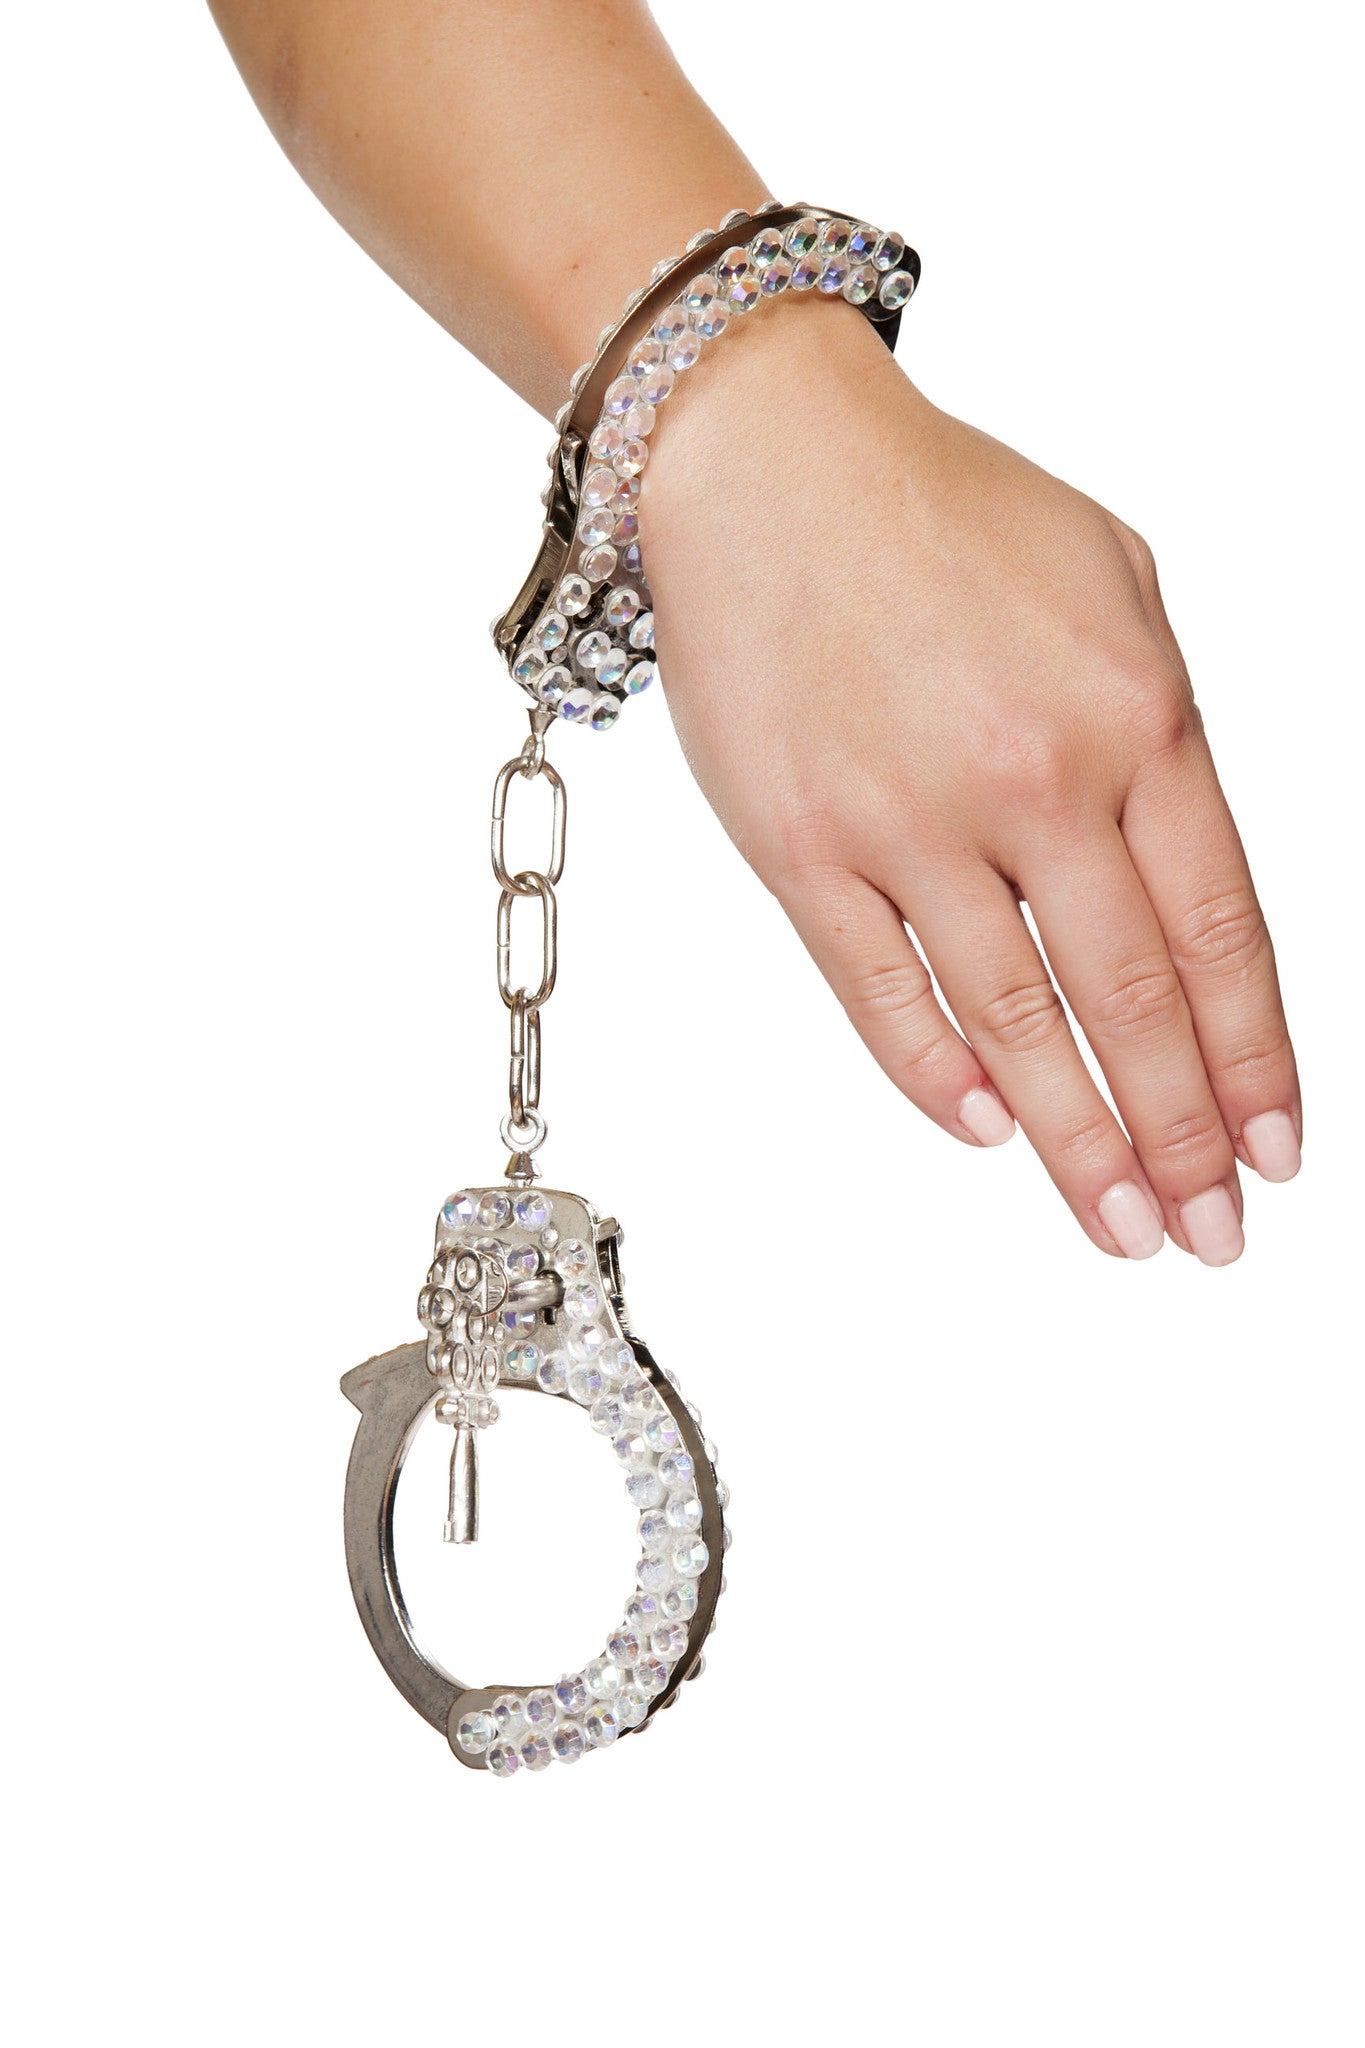 CU102 - Silver Handcuffs with Rhinestones